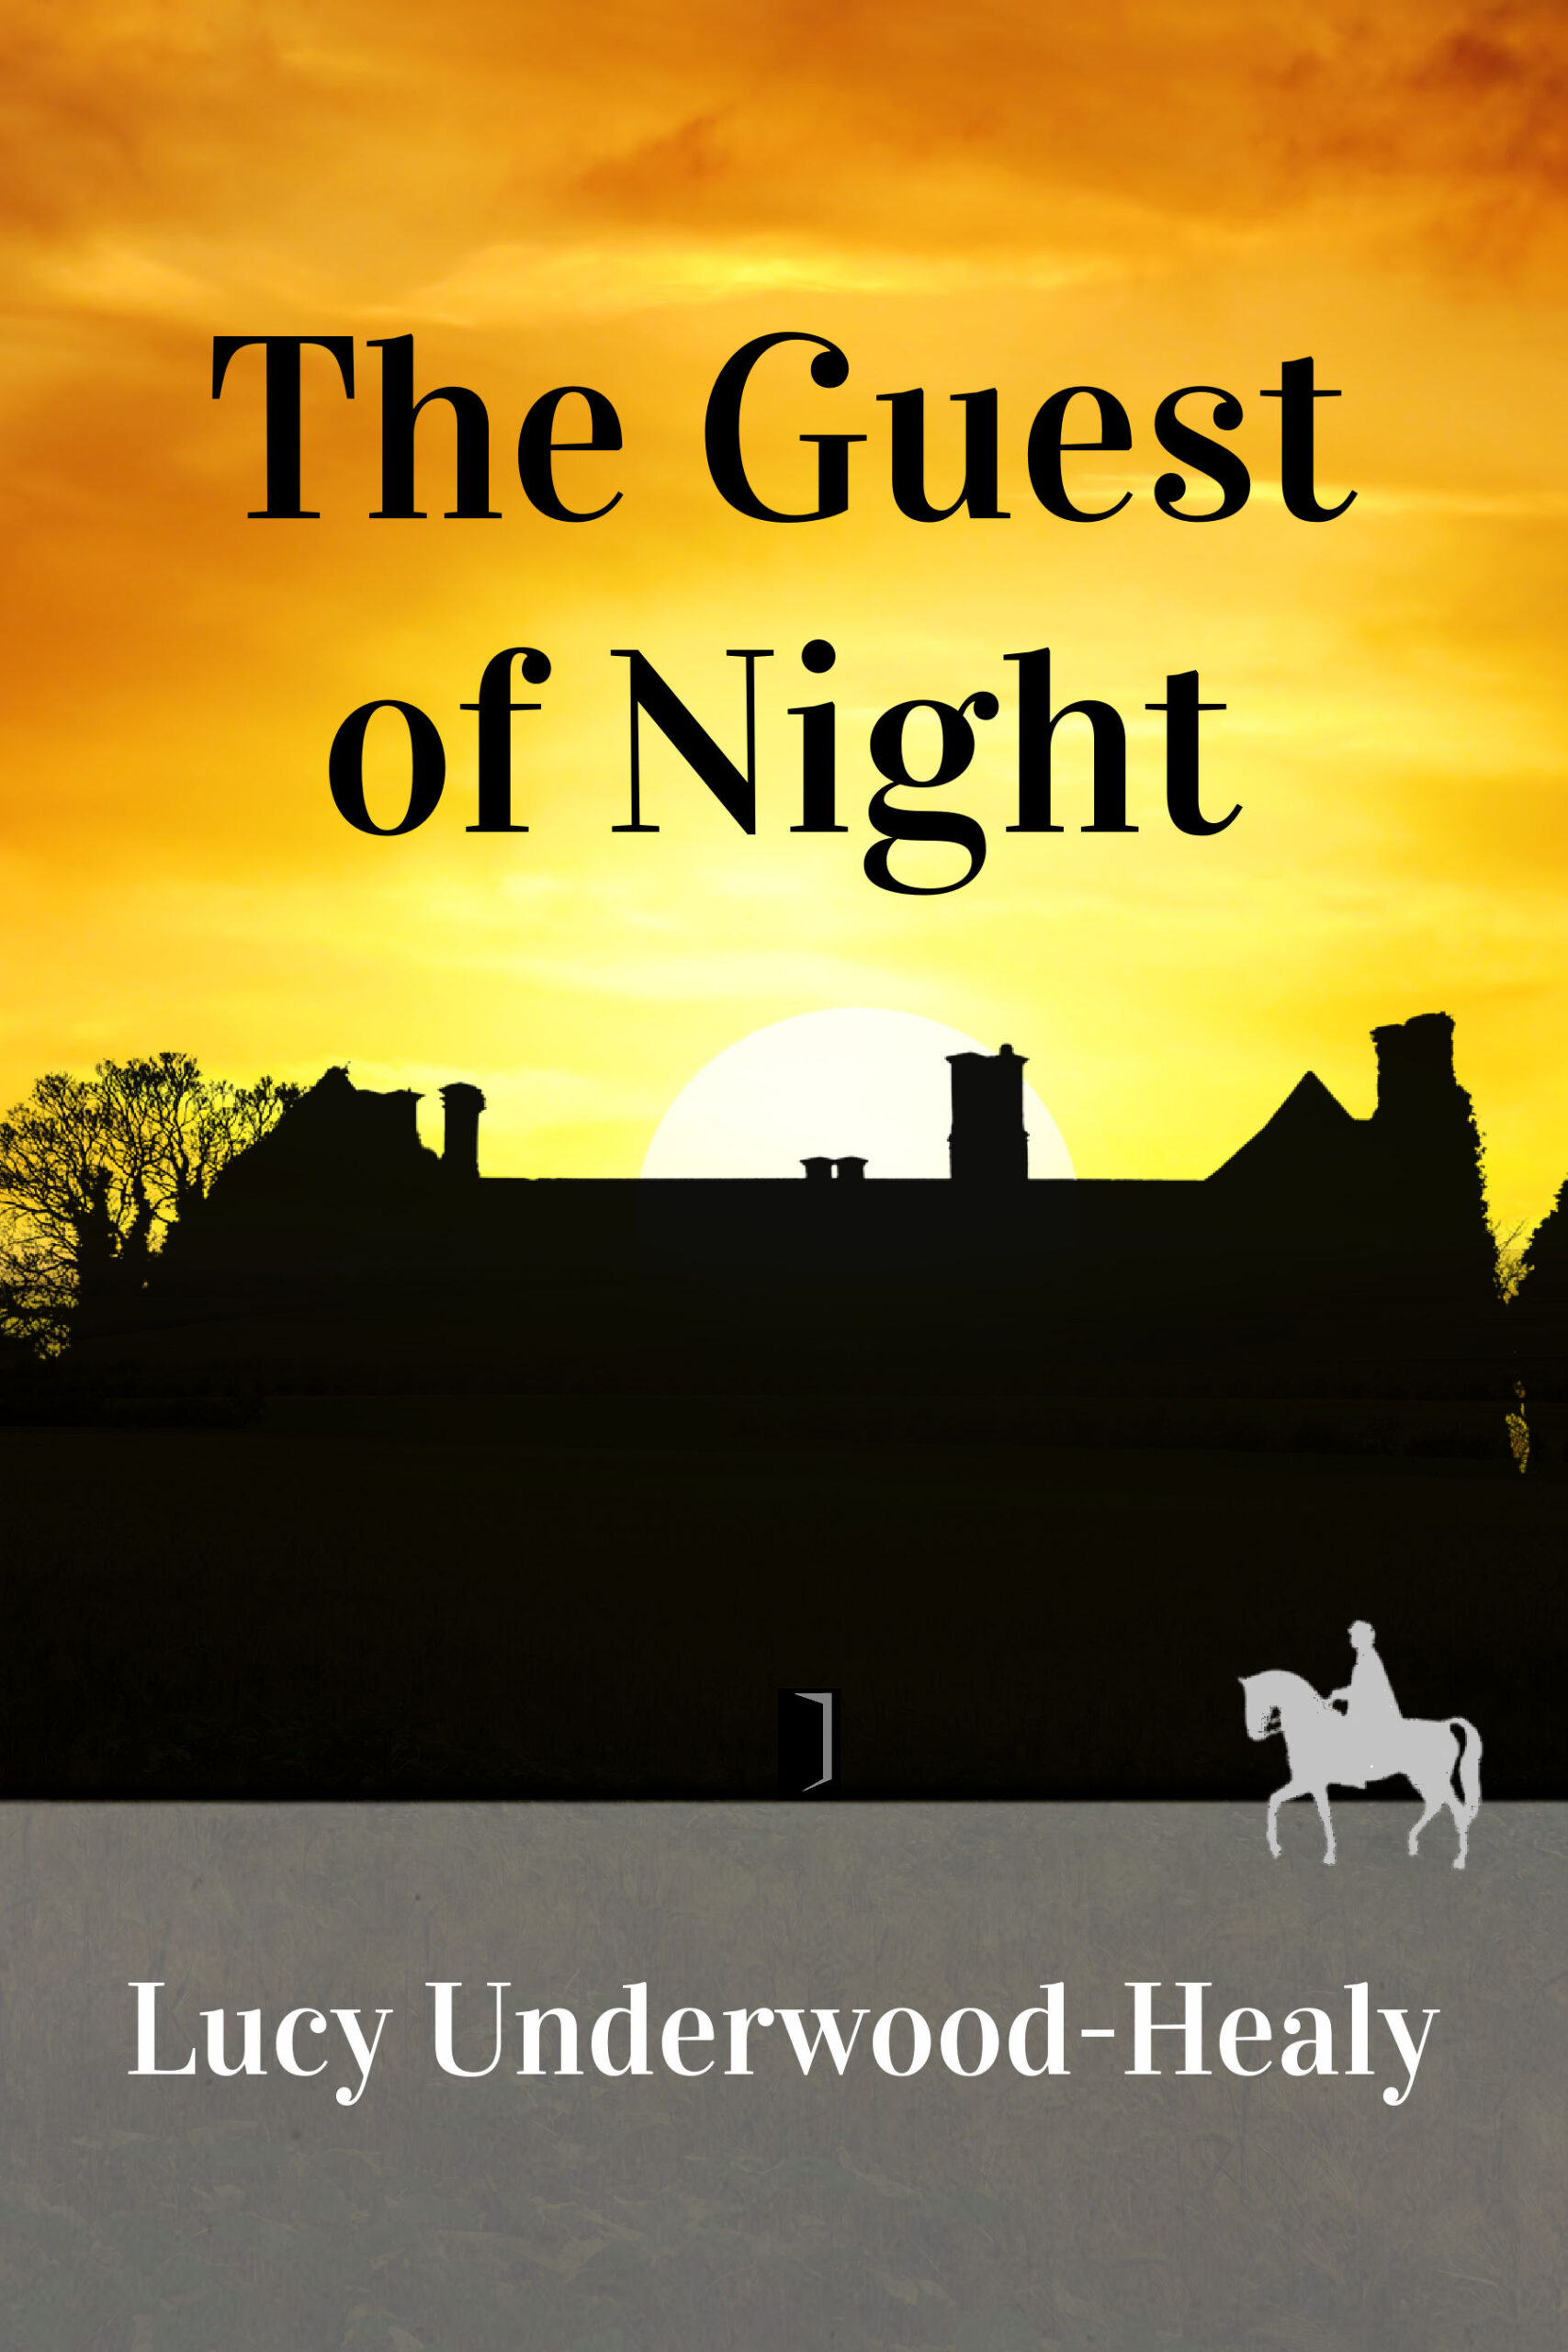 The Guest of Night by Lucy Underwood Healy